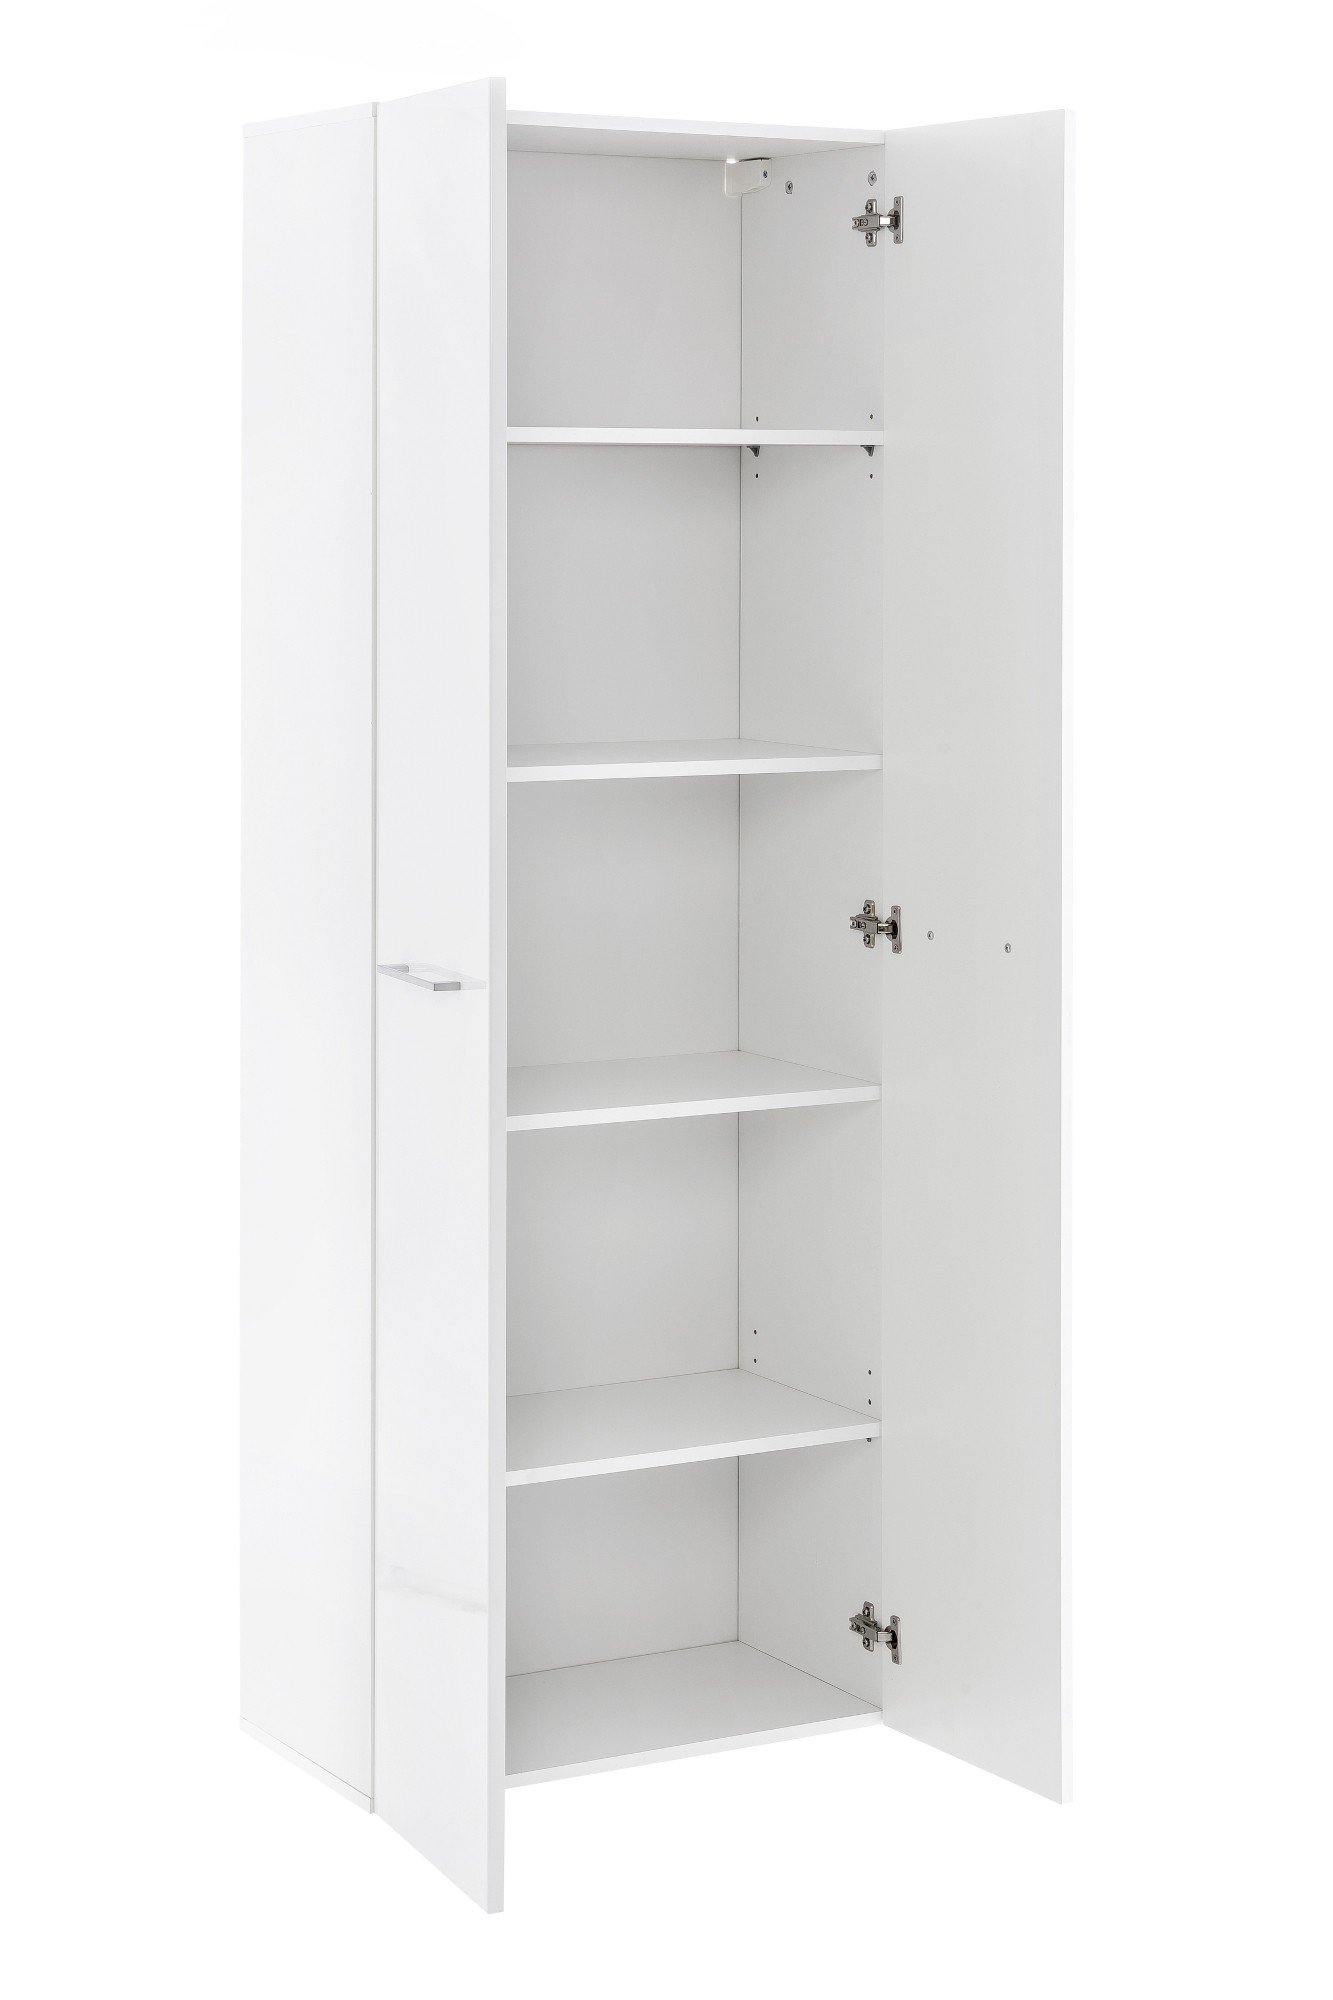 badschrank ulm badezimmerschrank hochschrank 2 t ren 5 f cher 60 cm weiss ebay. Black Bedroom Furniture Sets. Home Design Ideas